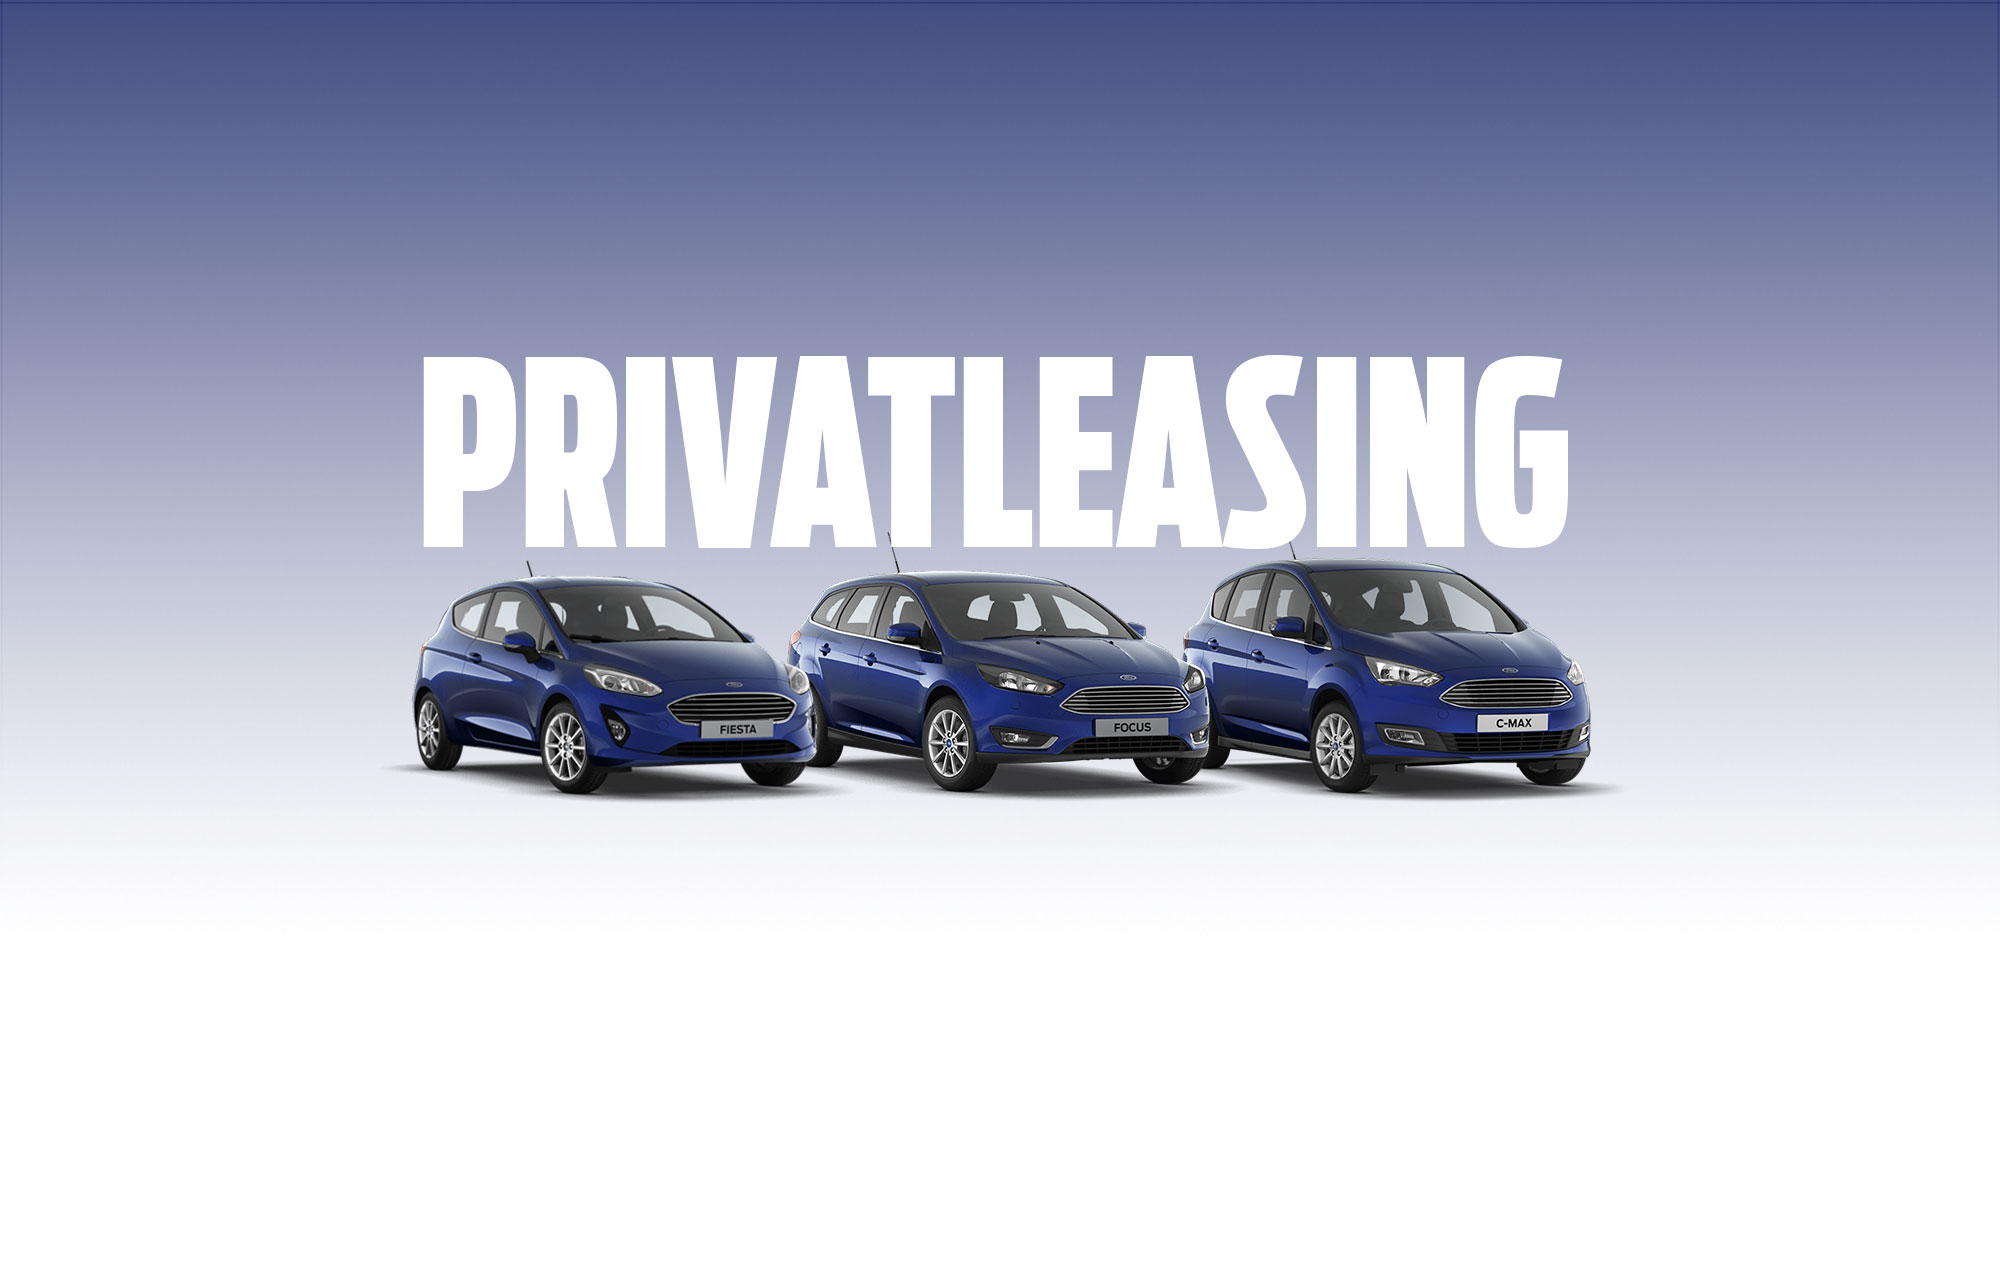 Ford Privatleasing